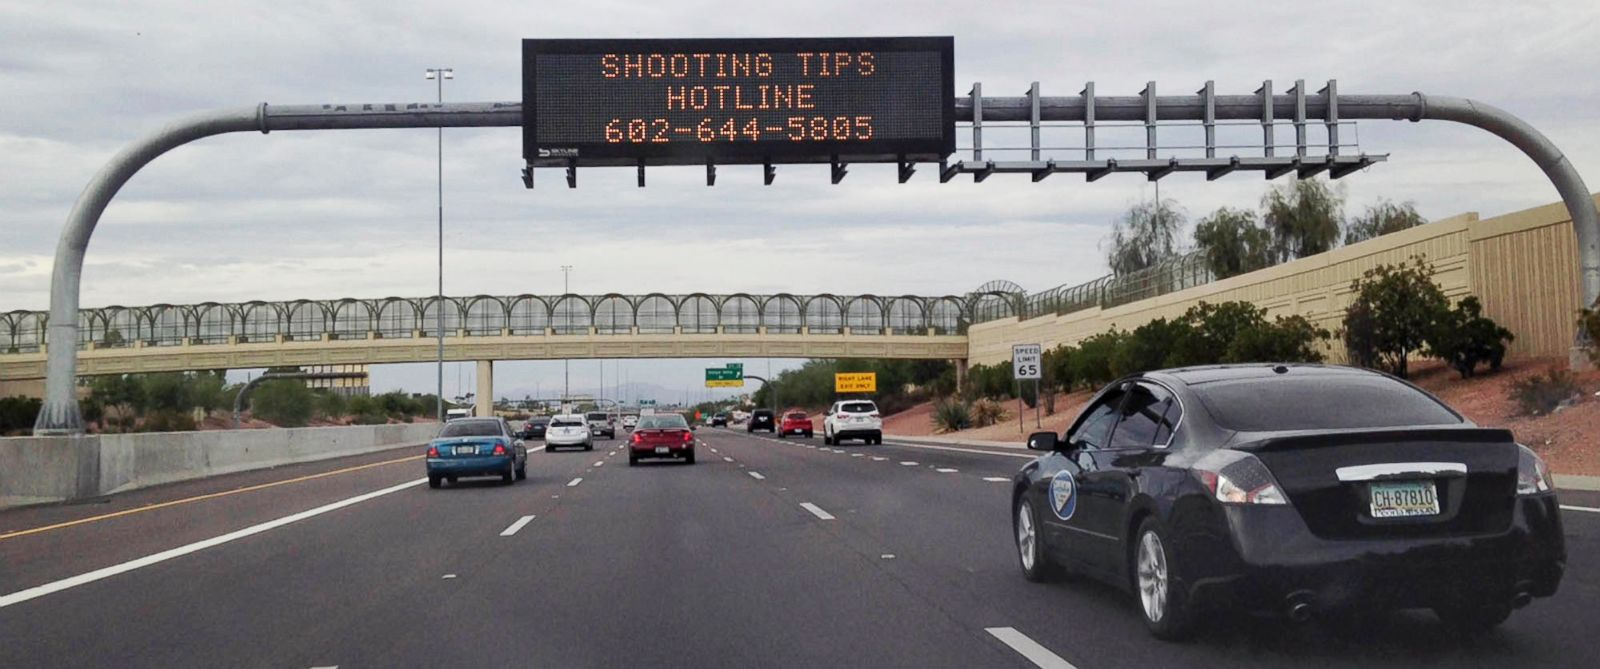 PHOTO: An Arizona Department of Transportation sign gives a hotline number for information on the recent freeway shootings, Sept. 9, 2015 near Phoenix, Ariz.